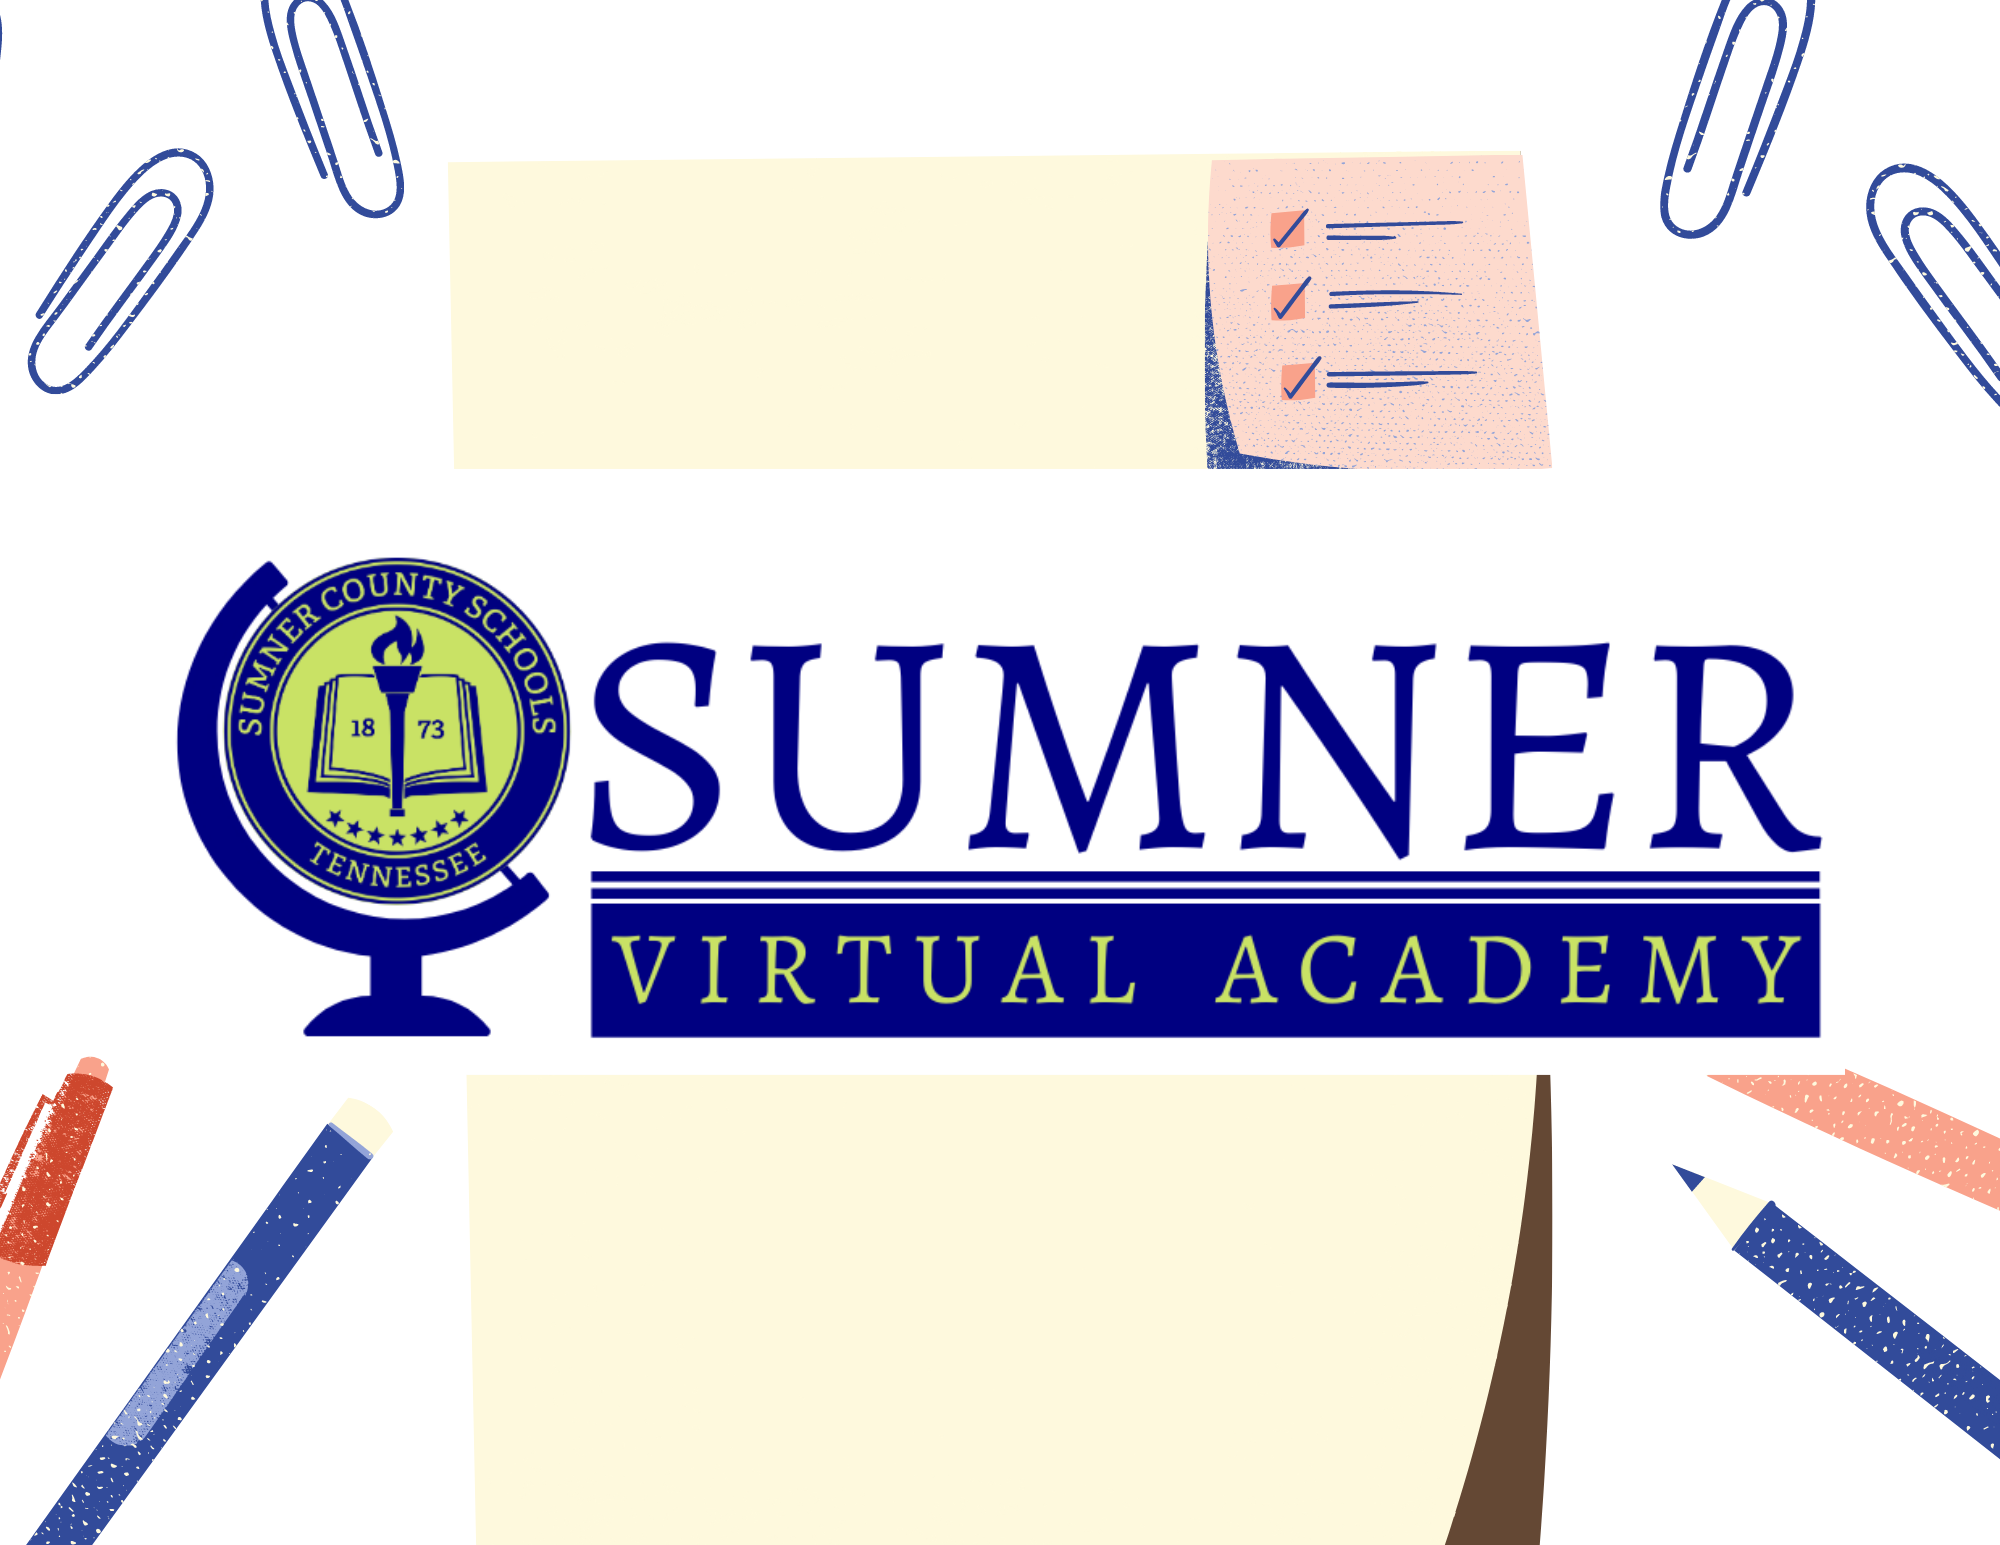 Sumner Virtual Academy